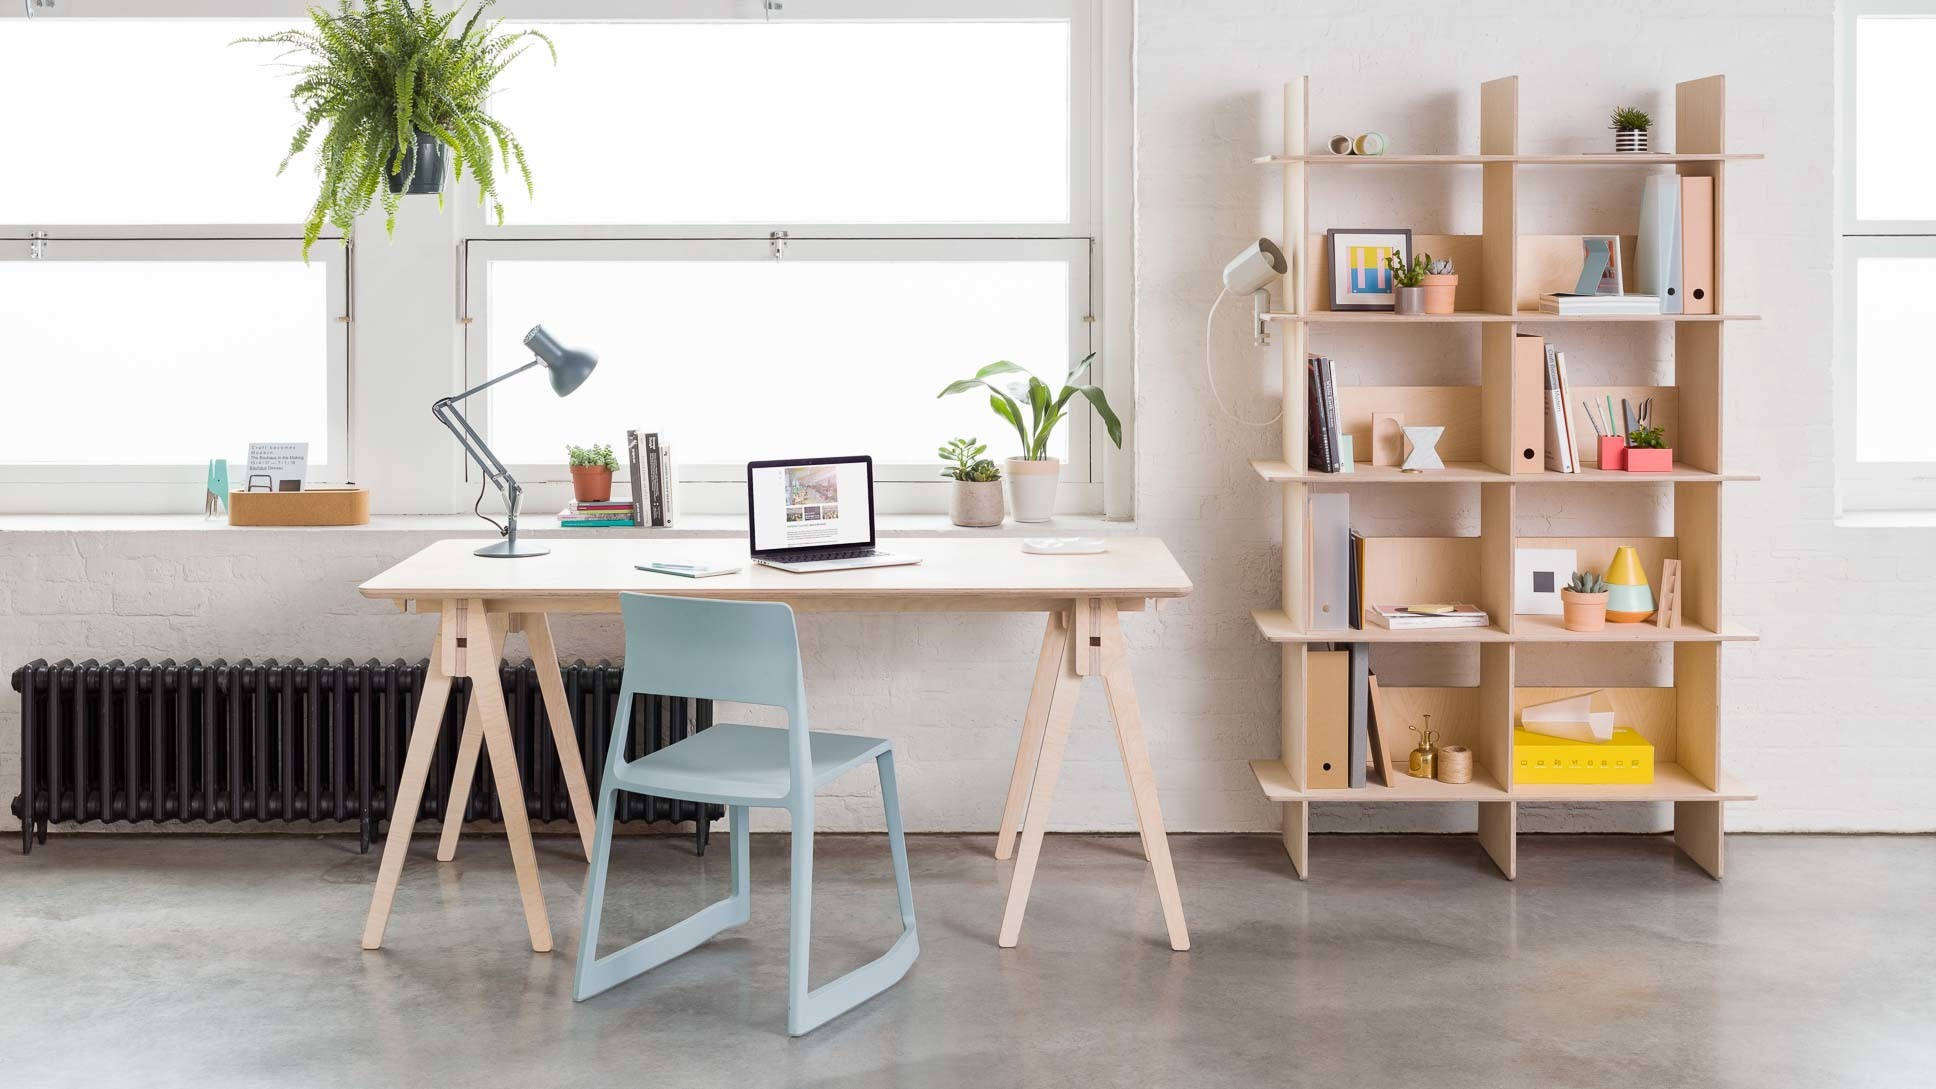 The Ordered Office: Affordable Modular Plywood Desks and Storage - The Organized Home